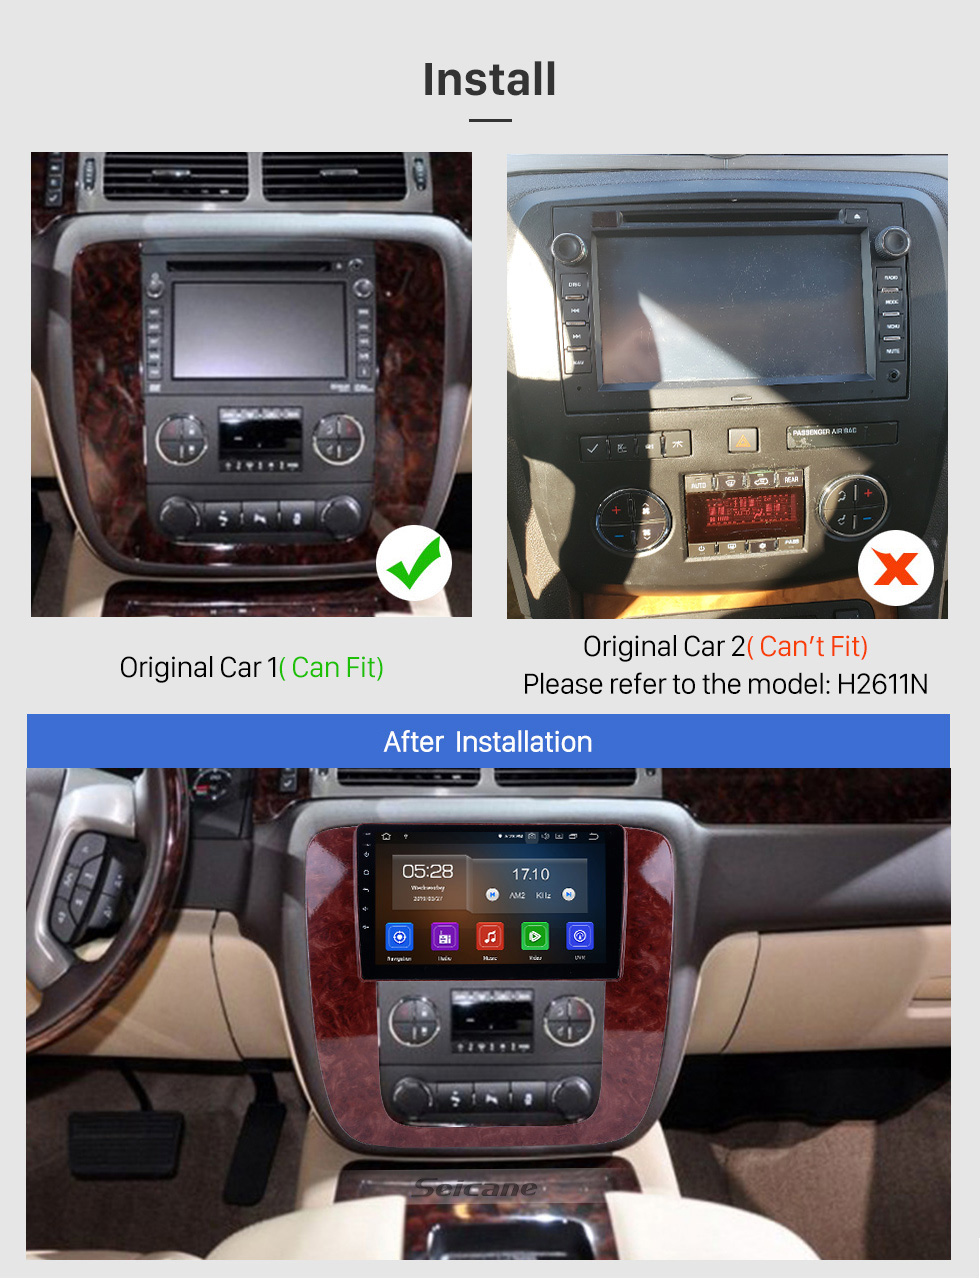 Seicane Android 10.0 9 inch GPS Navigation Radio for 2007-2012 GMC Yukon/Acadia/Tahoe Chevy Chevrolet Tahoe/Suburban Buick Enclave with HD Touchscreen Carplay Bluetooth support OBD2